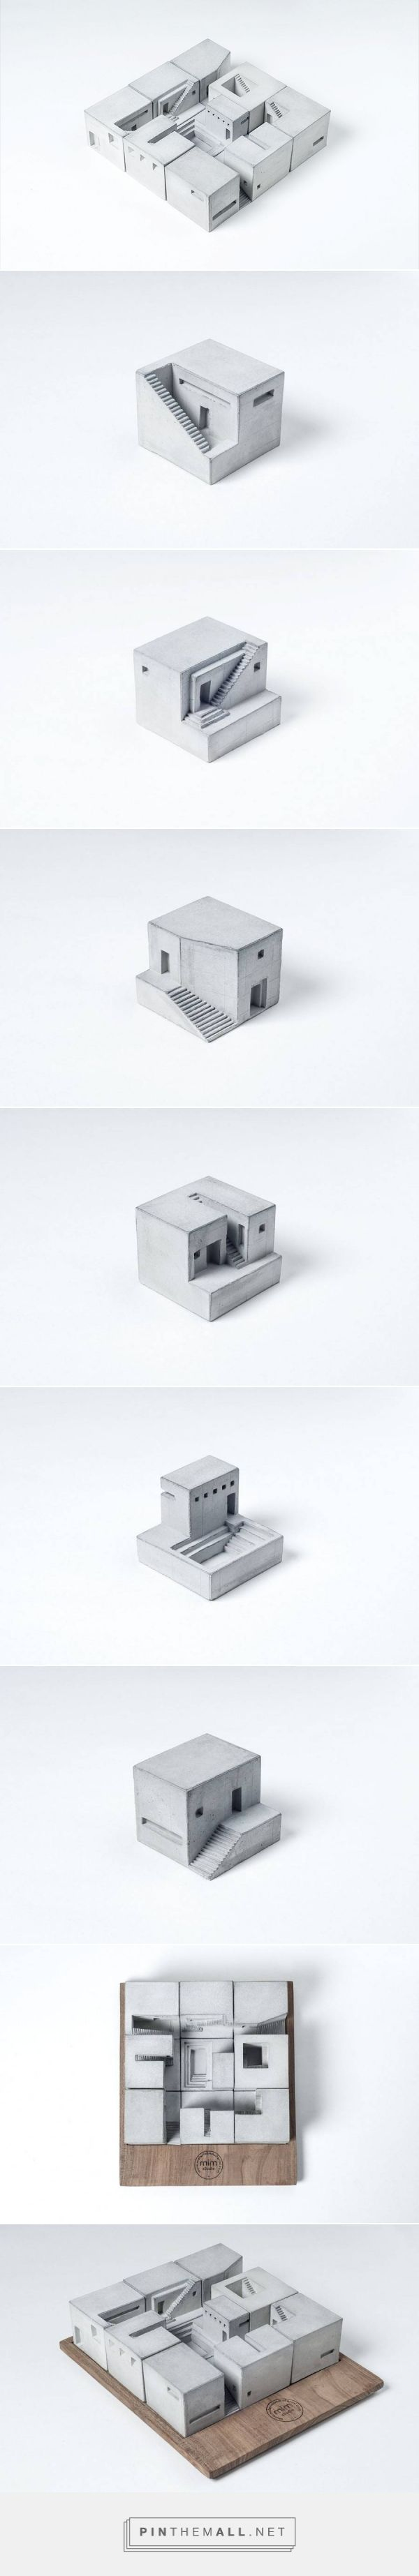 Miniature Concrete Buildings – Fubiz Media - created via http://pinthemall.net (How To Build A Shed On Concrete)